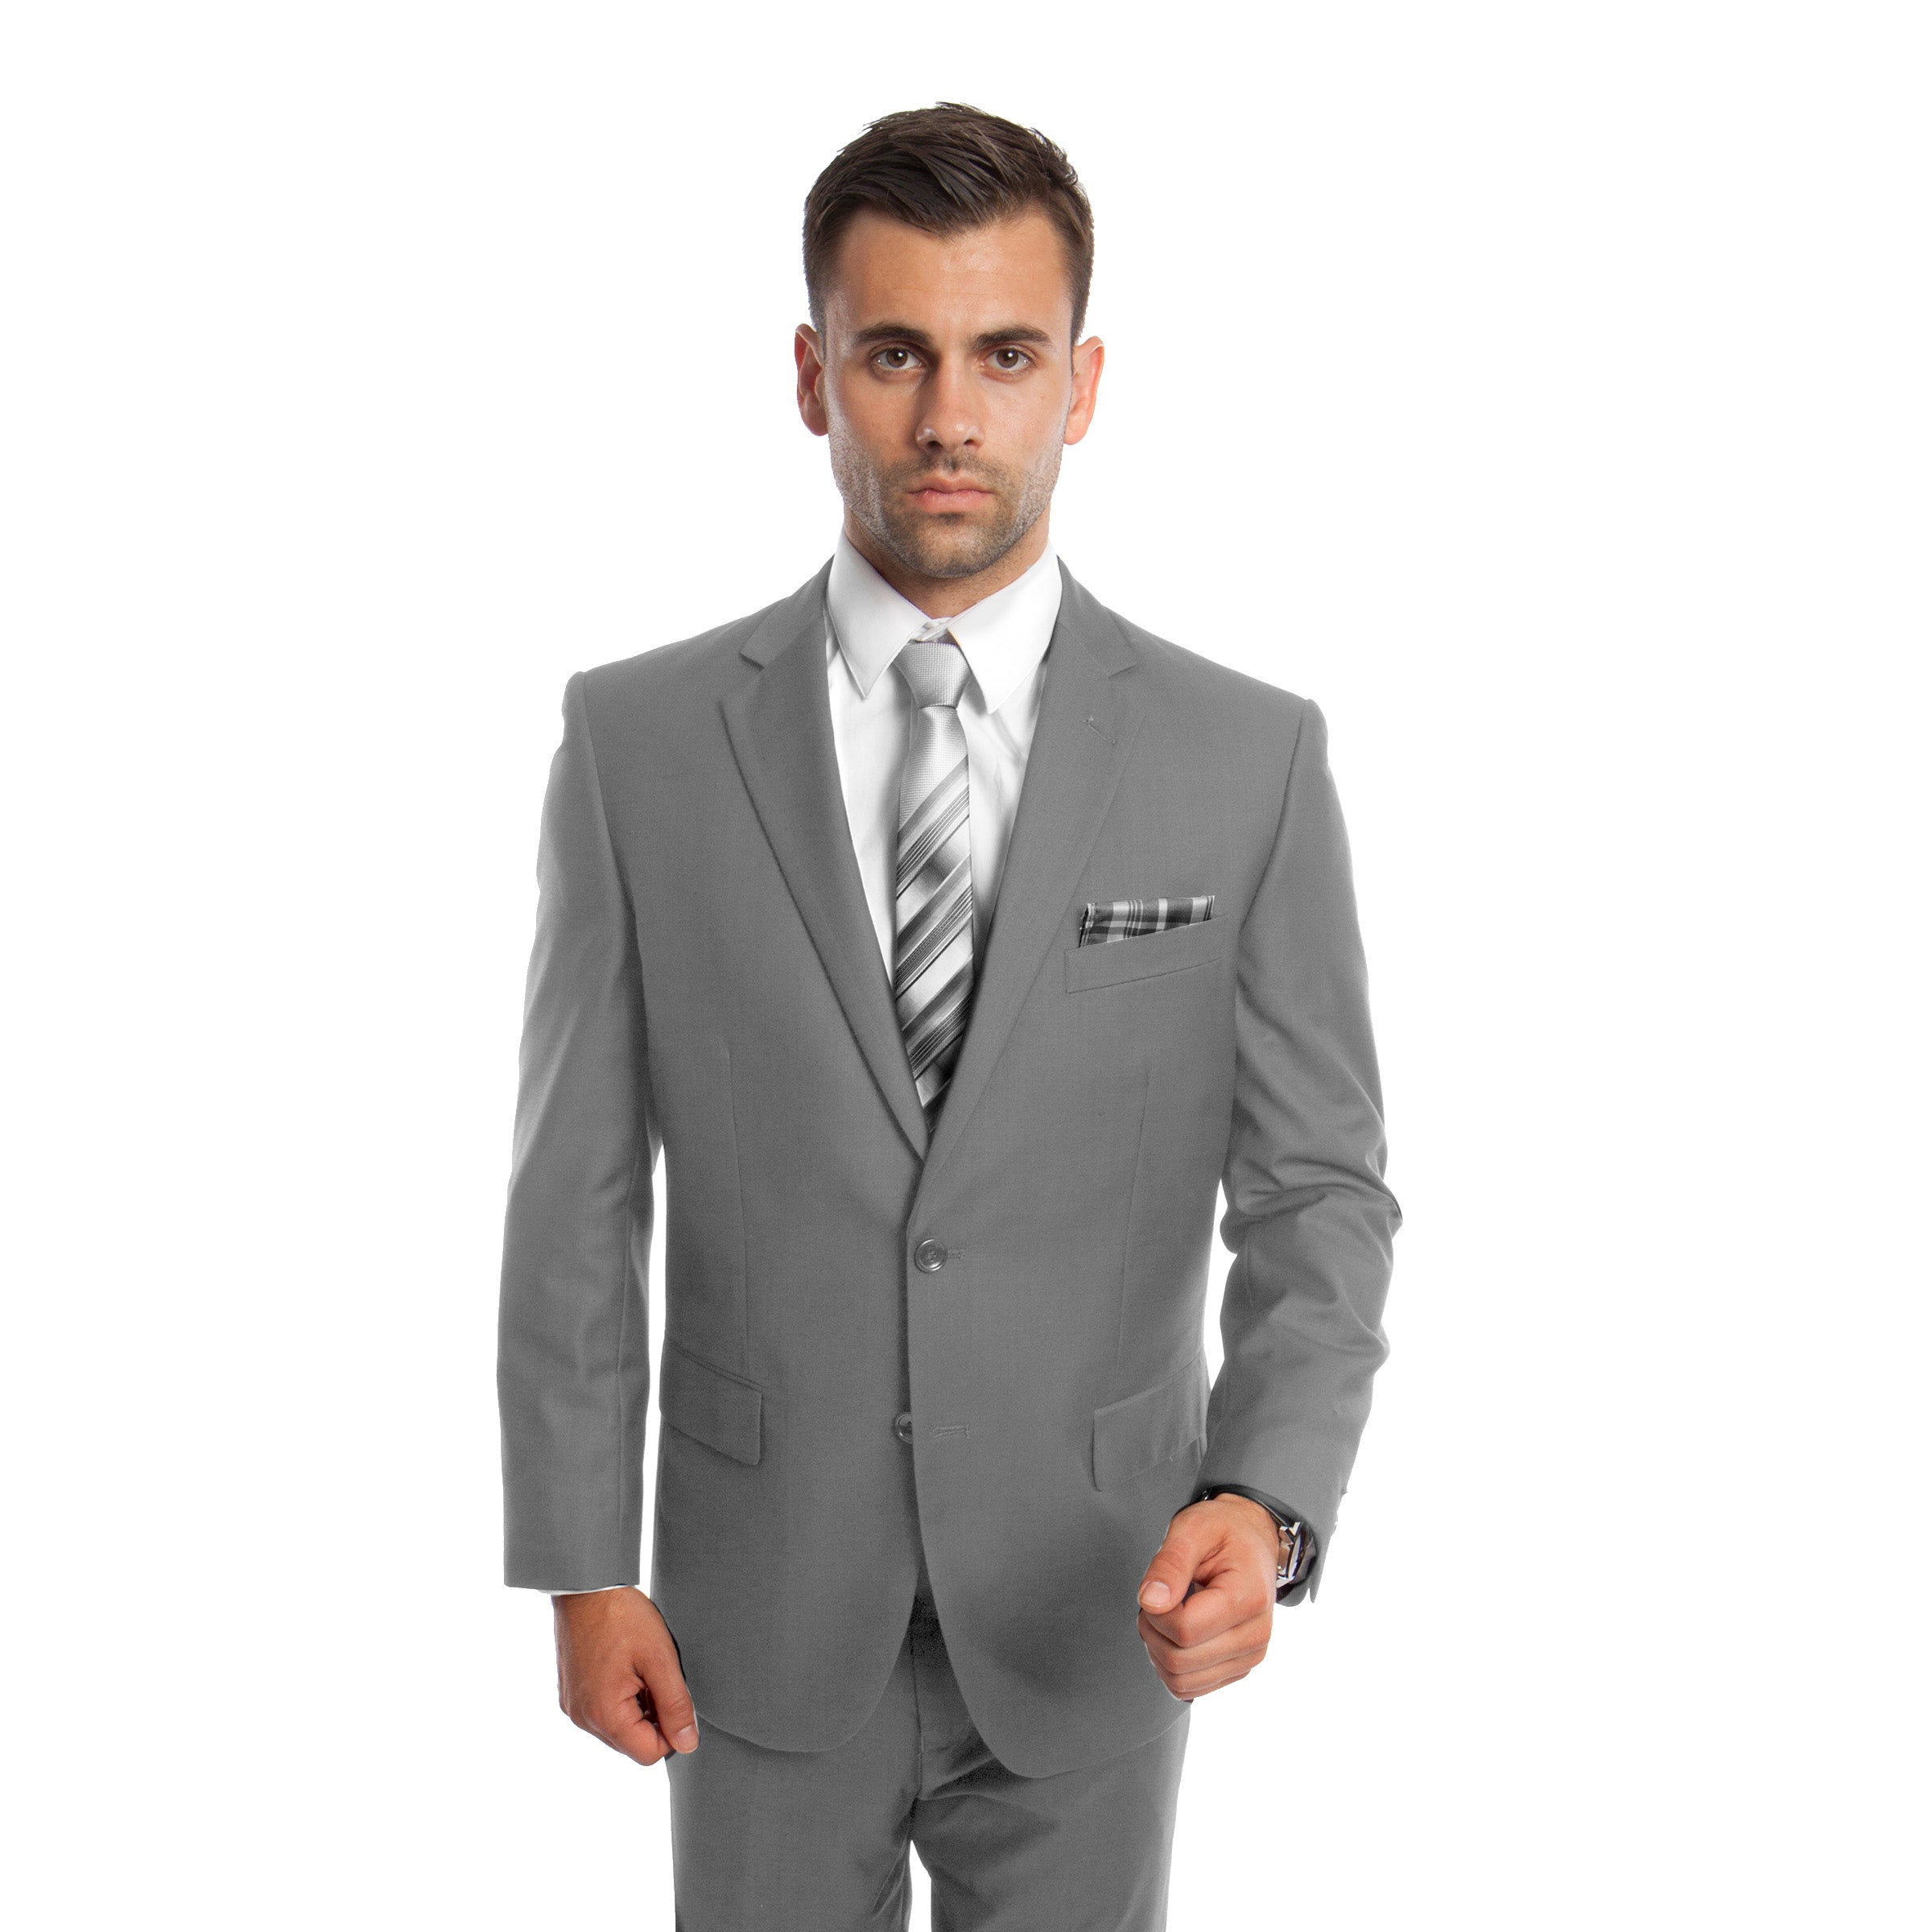 Lt. Gray Solid Mens Suit 2-PC Regular Modern Fit Suits For Men